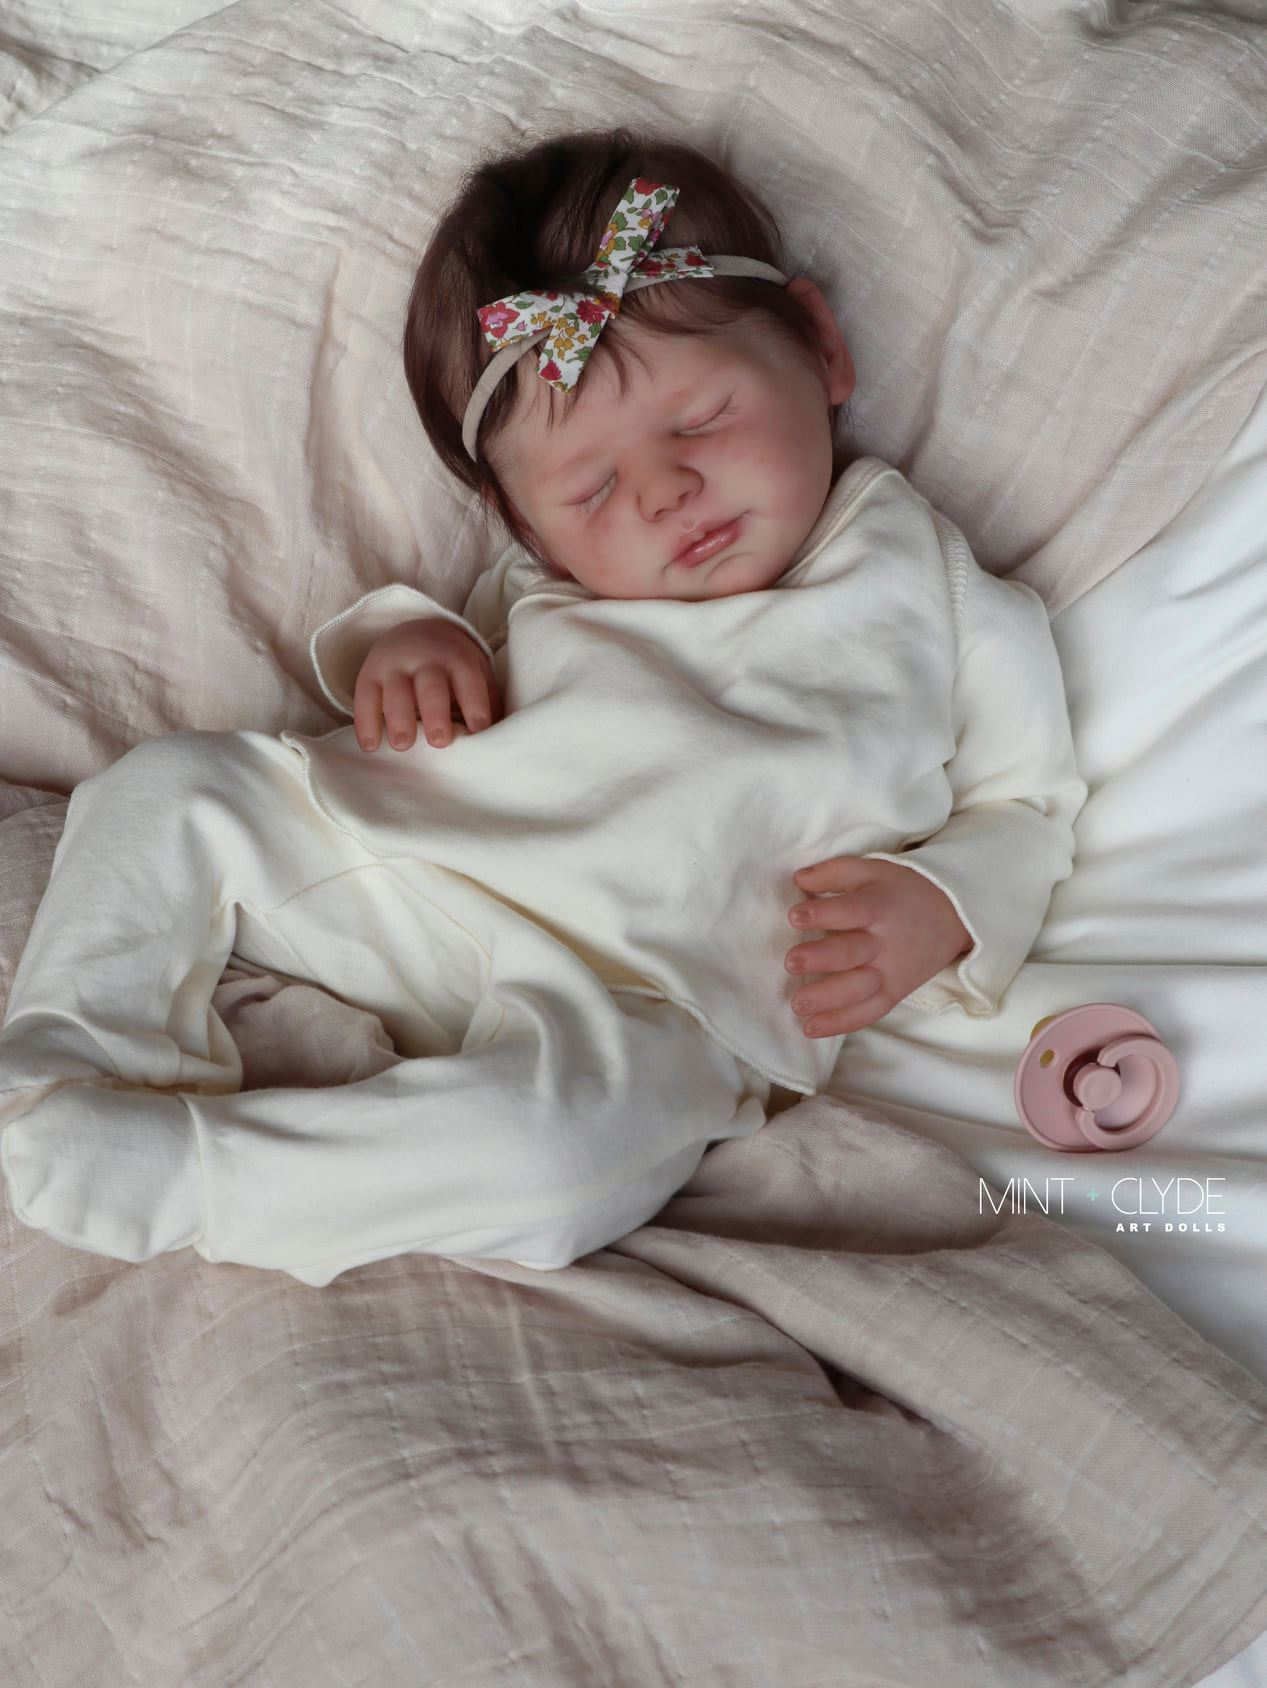 Stunning Doll Pre-orders Starting Soon - Our Life With Reborns